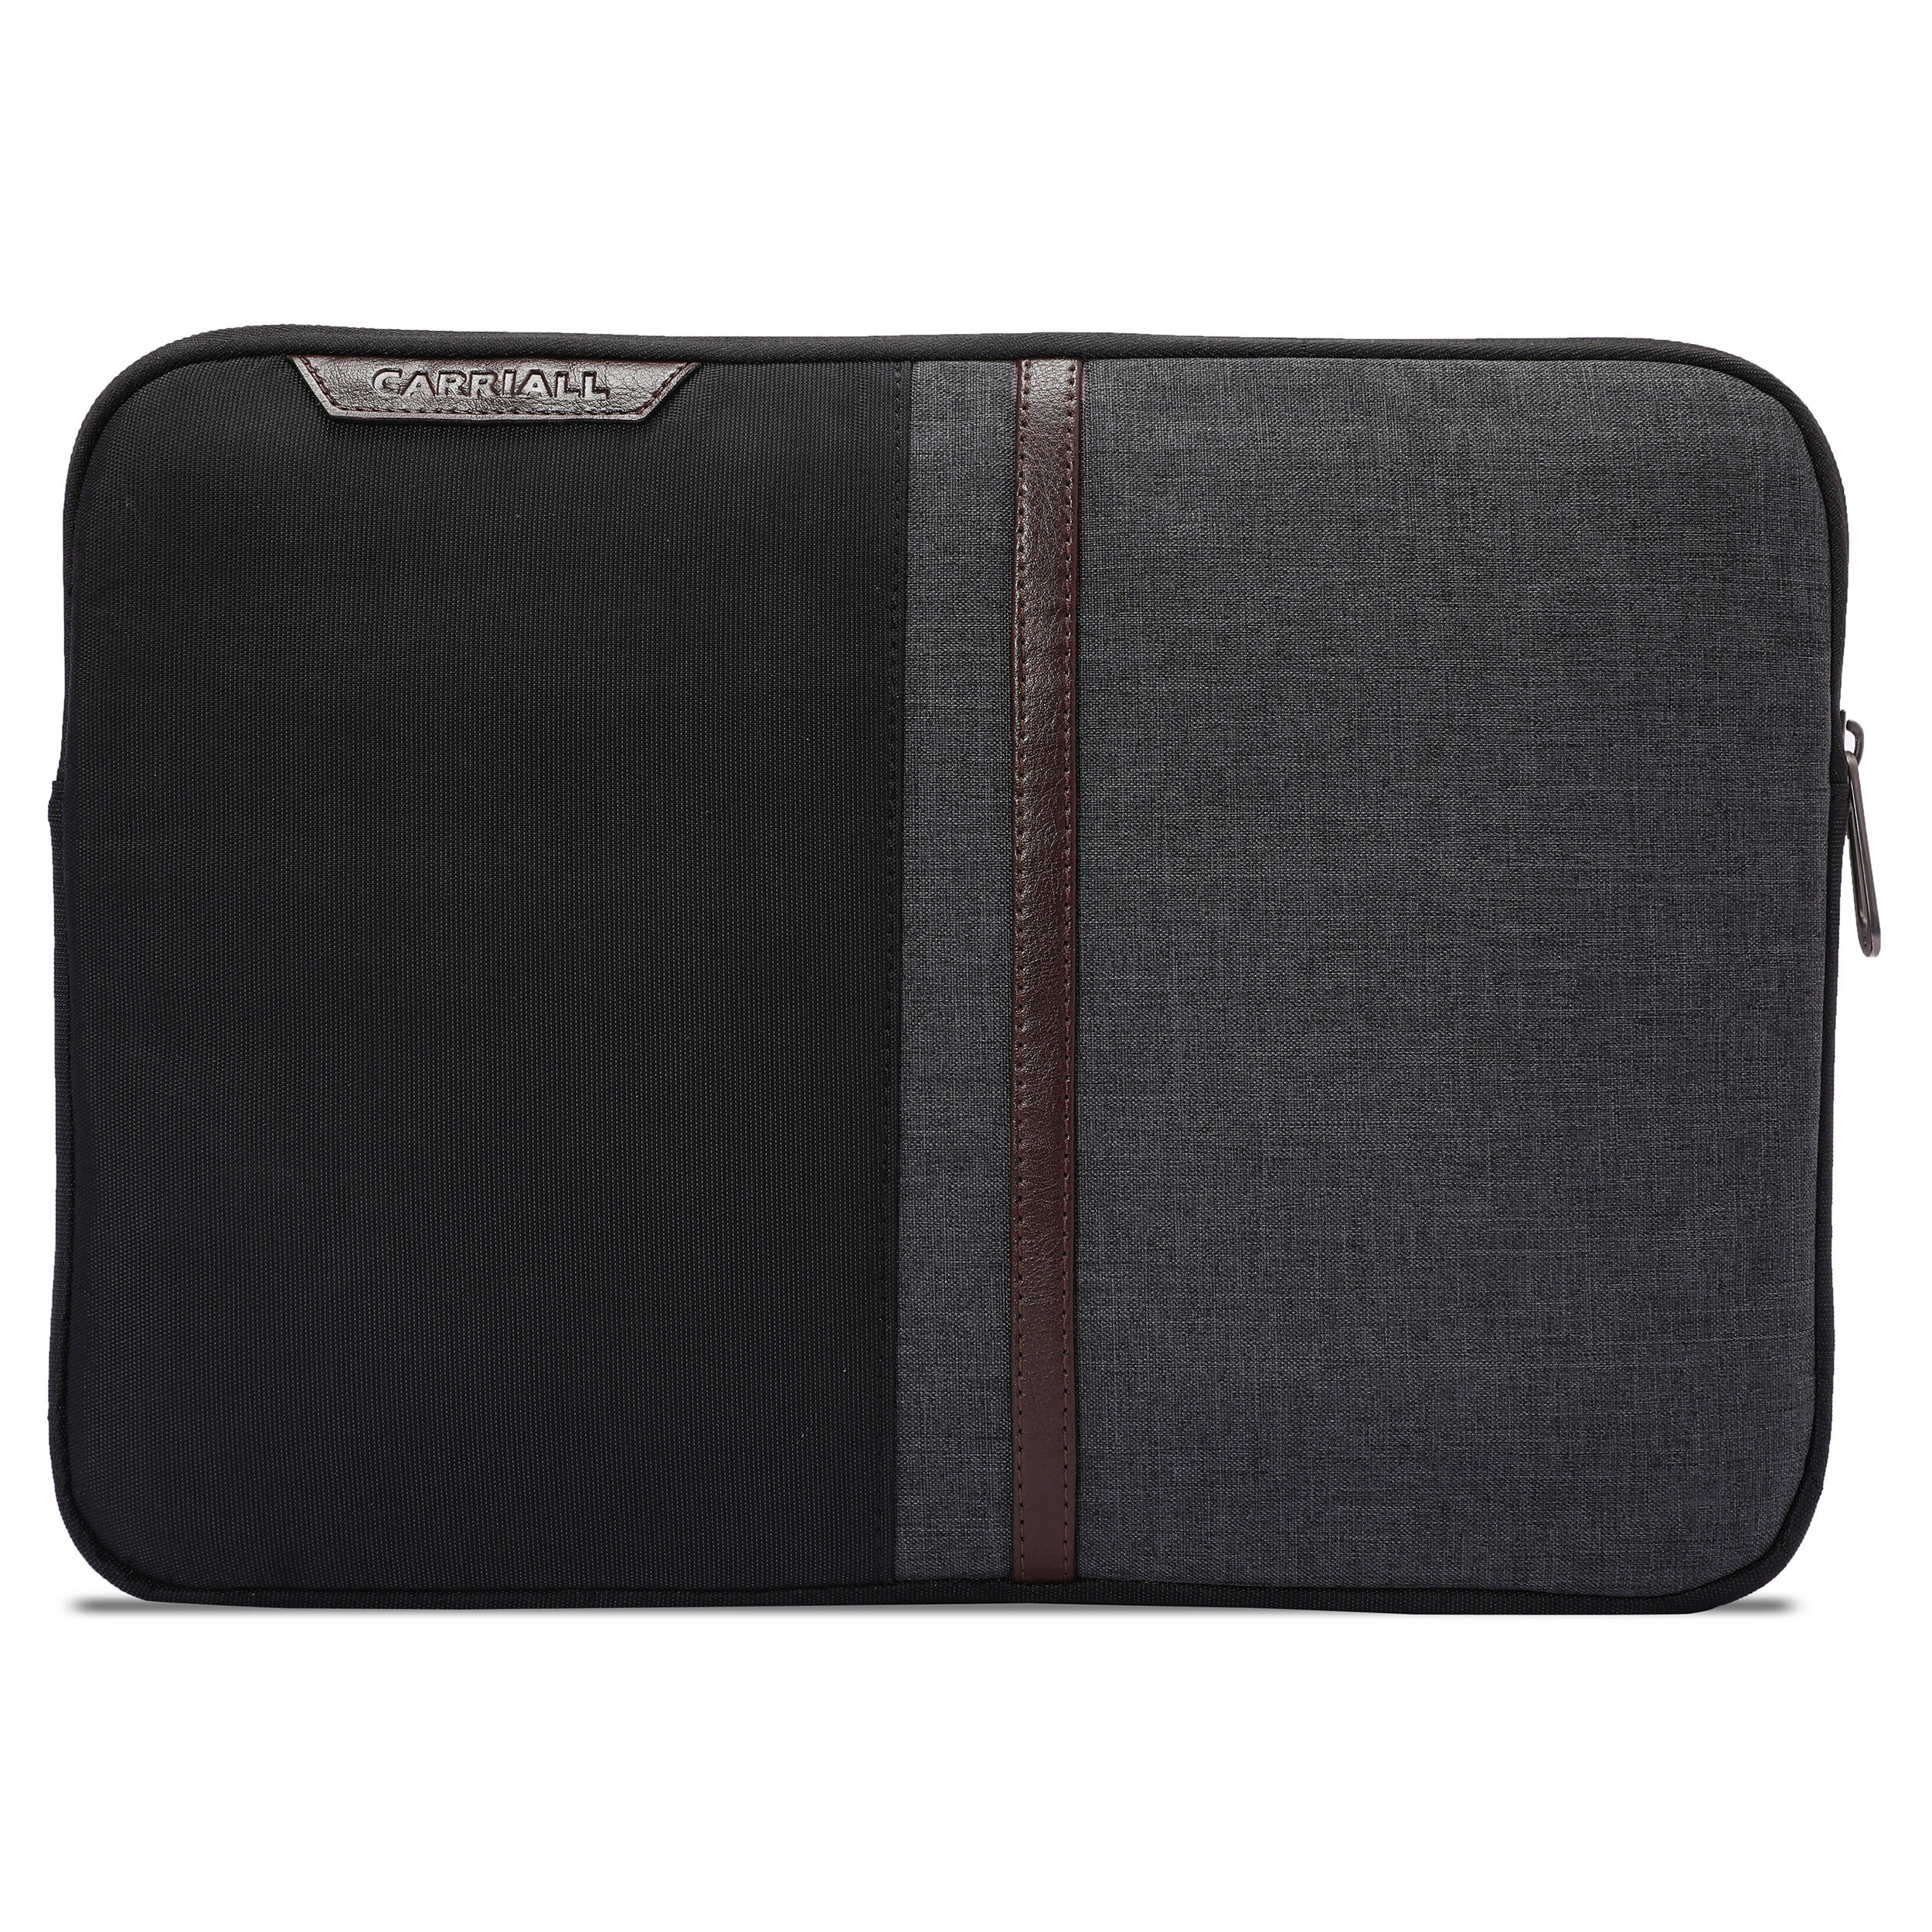 Carriall Suave Durable Fabric Sleeve for 14 inch Laptop (Water Resistant, CALSSUAVEB2, Black)_1